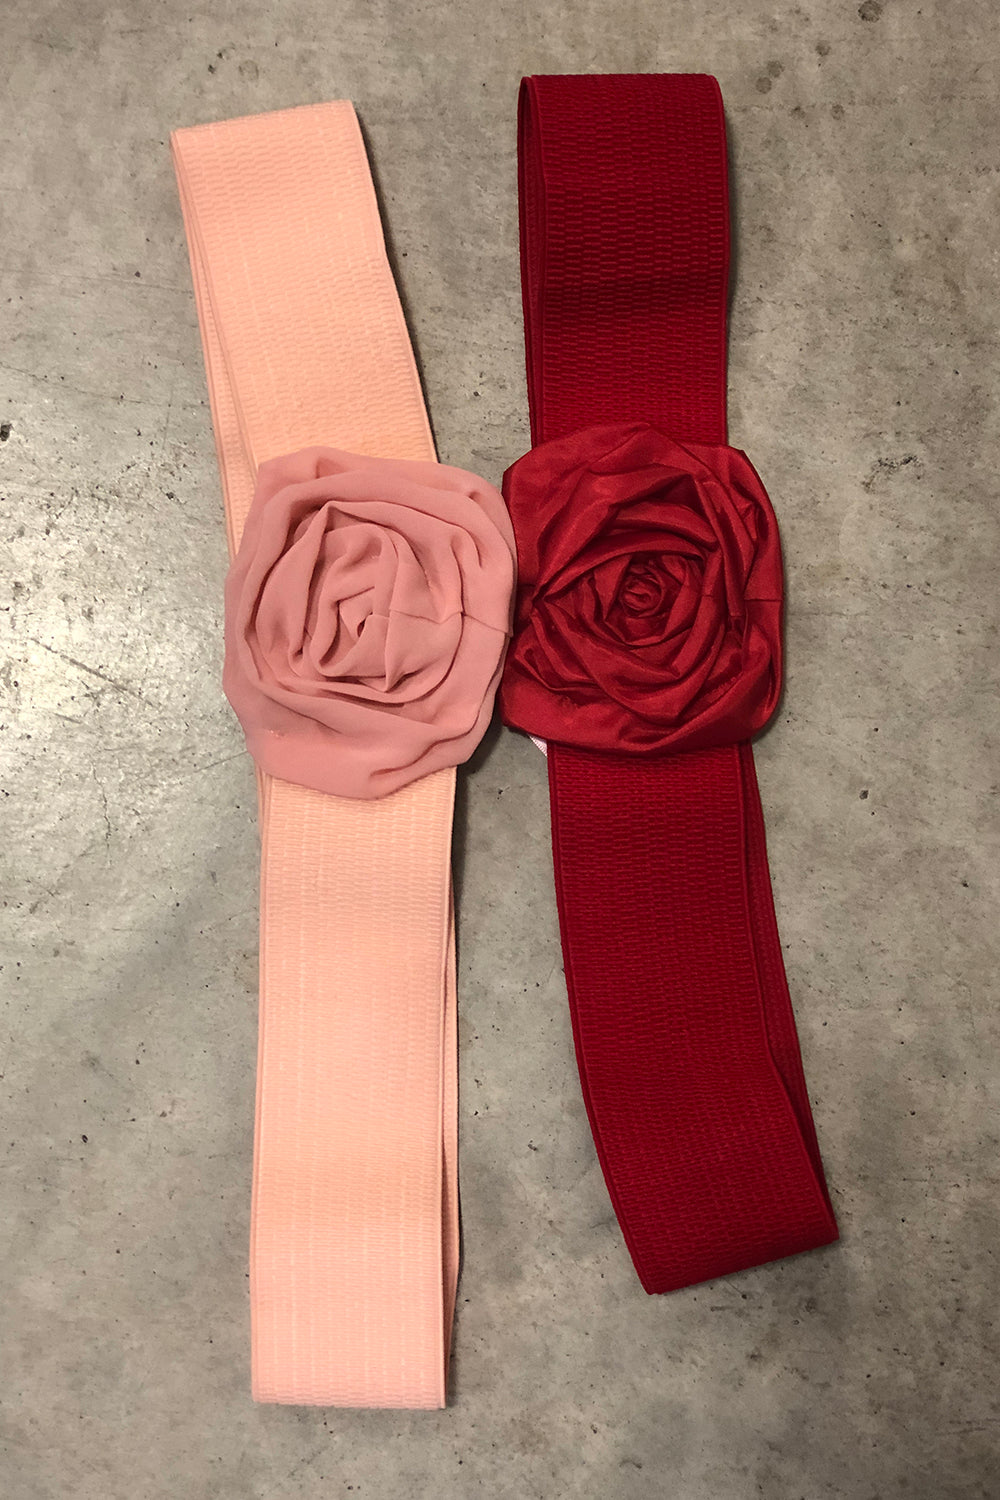 ROSE BELT DEAL - 2 PACK Pink/Shiny Red